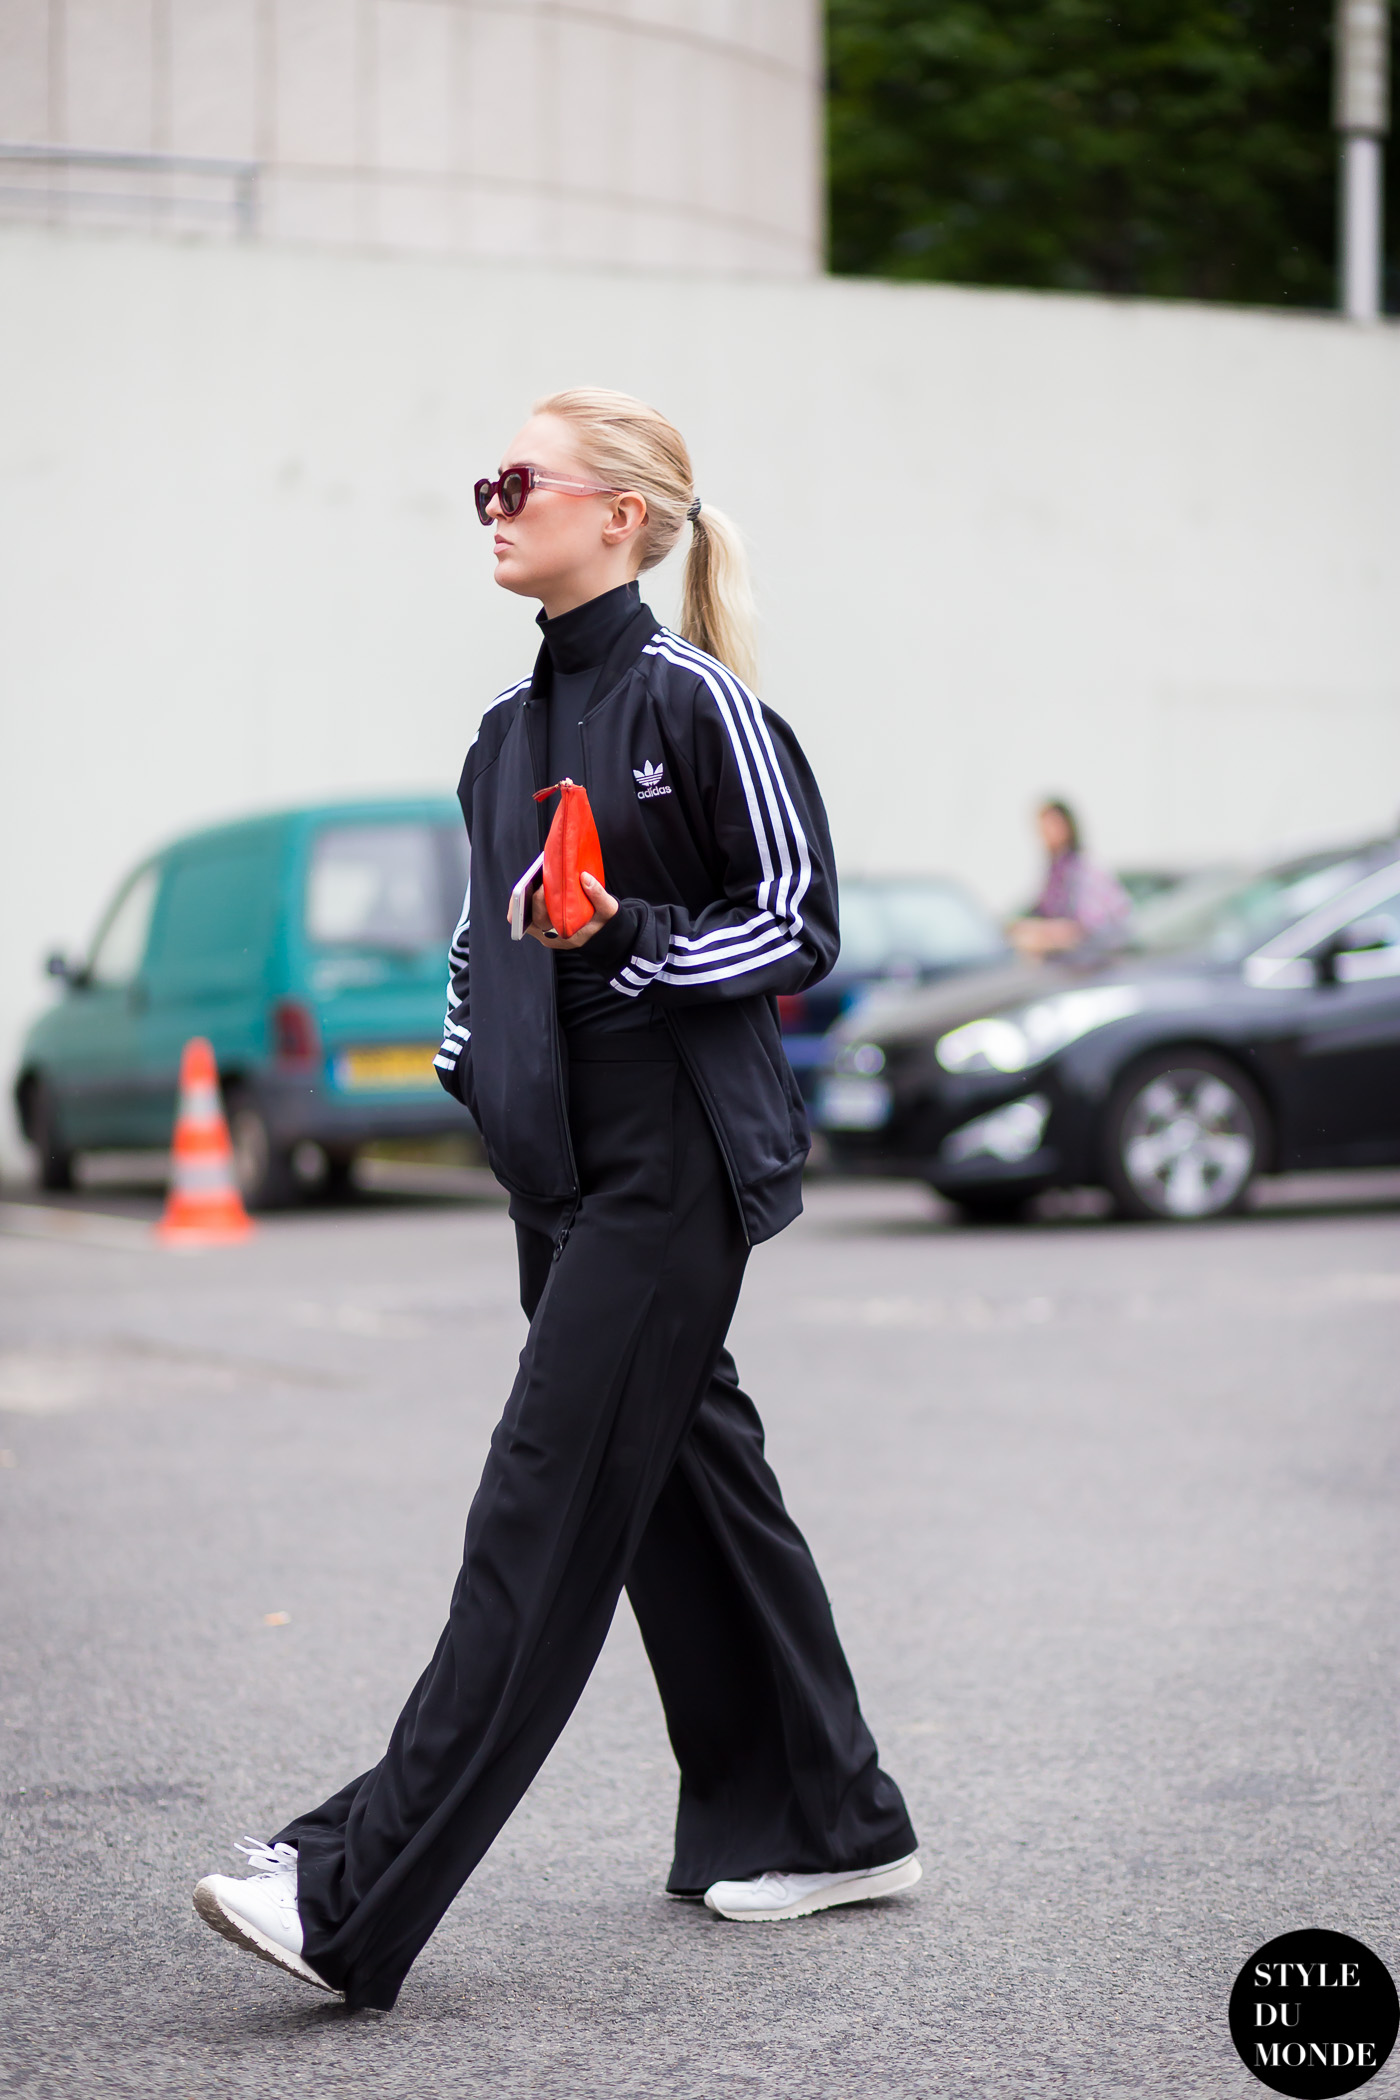 Before Givenchy fashion show adidas Street Style Street Fashion Streetsnaps by STYLEDUMONDE Street Style Fashion Blog